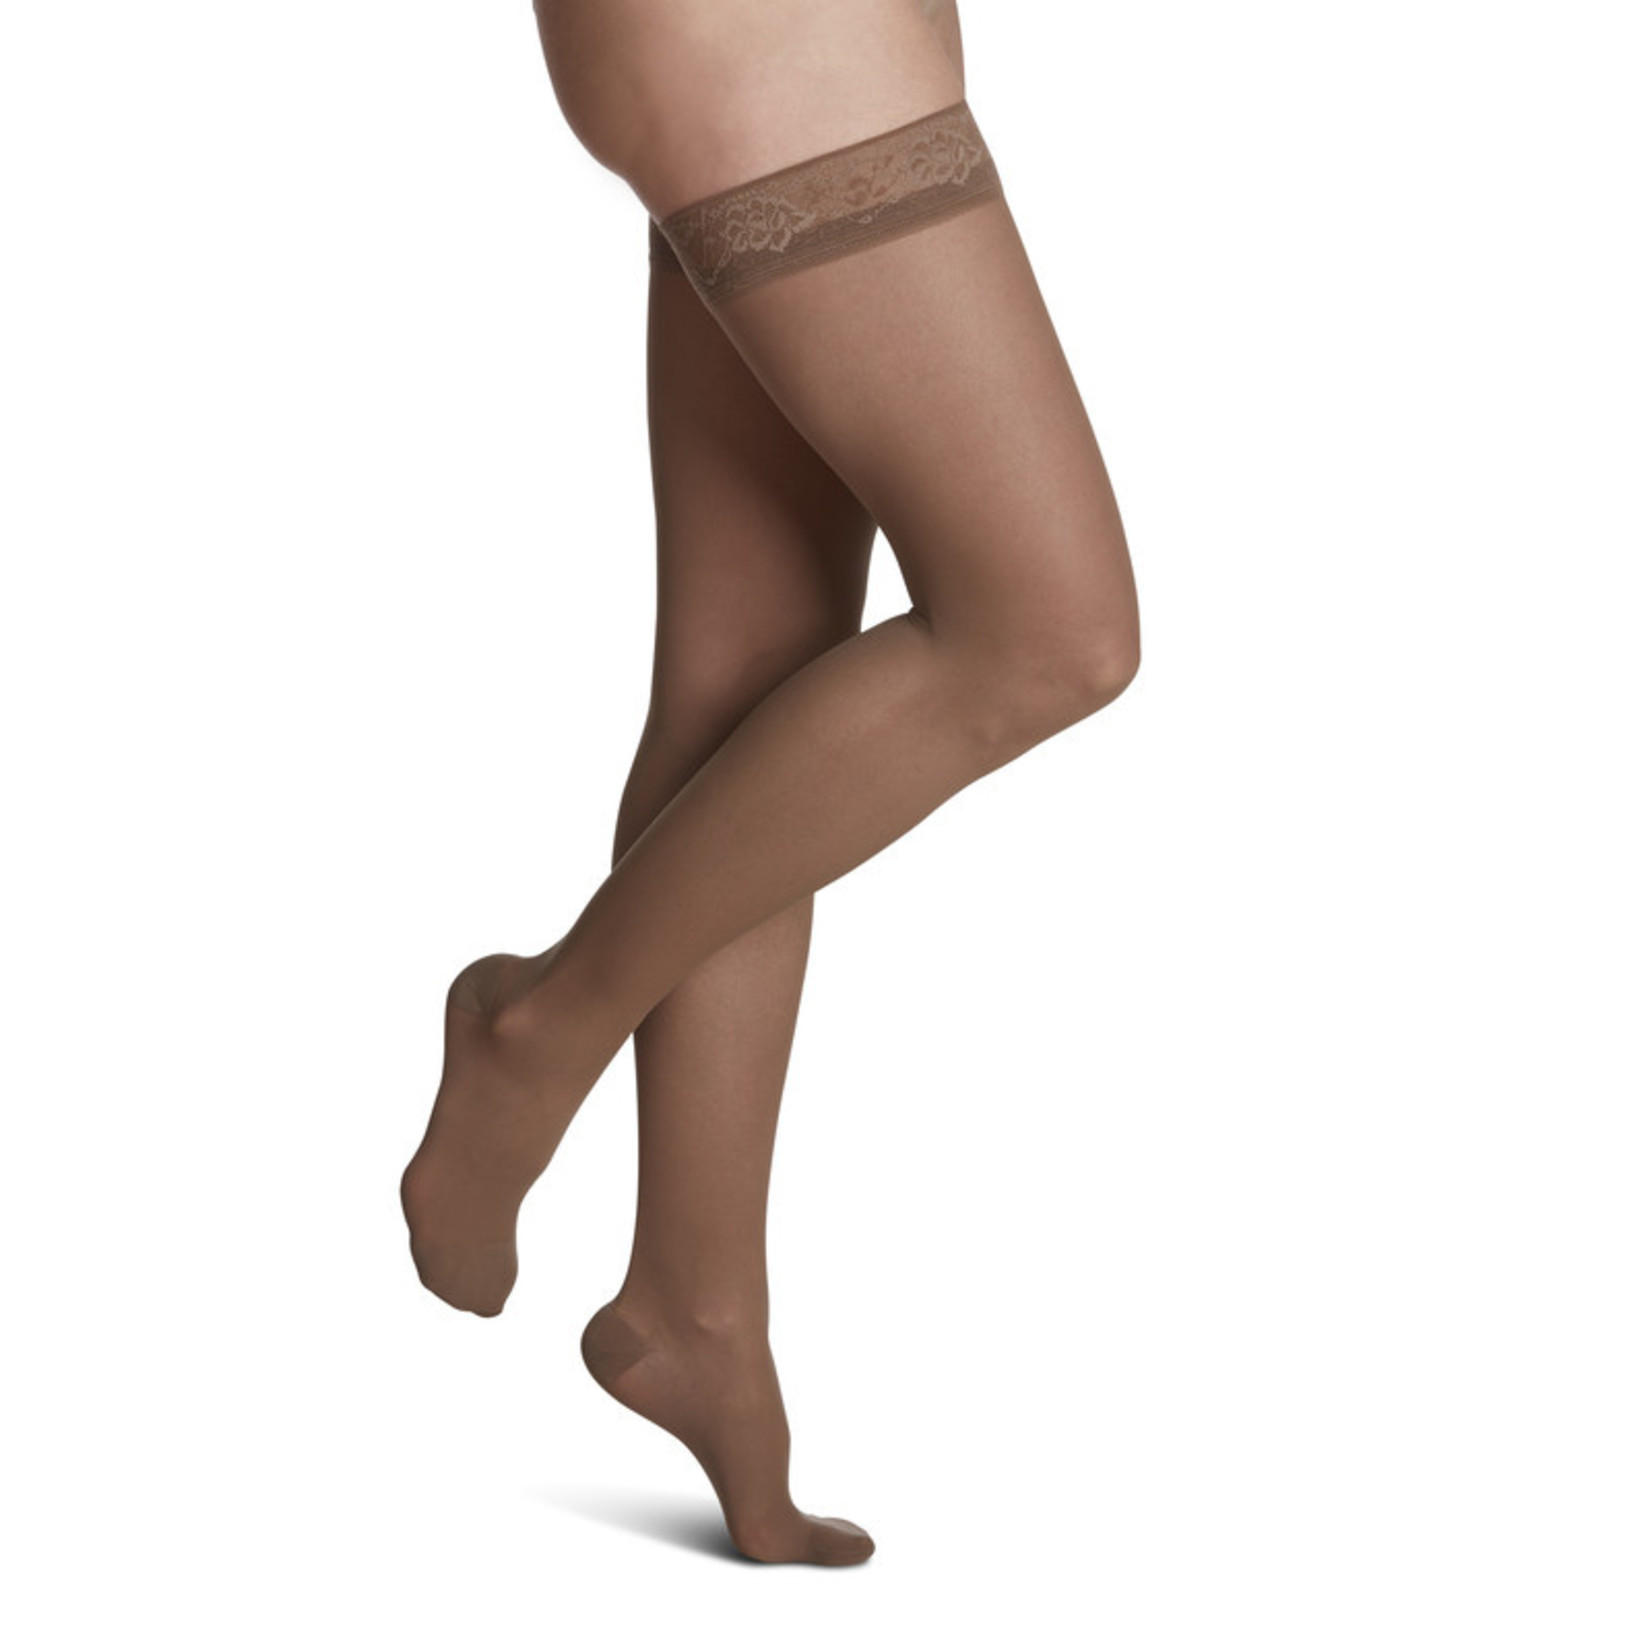 SIGVARIS Women's Style Sheer Thigh-High 30-40mmHg